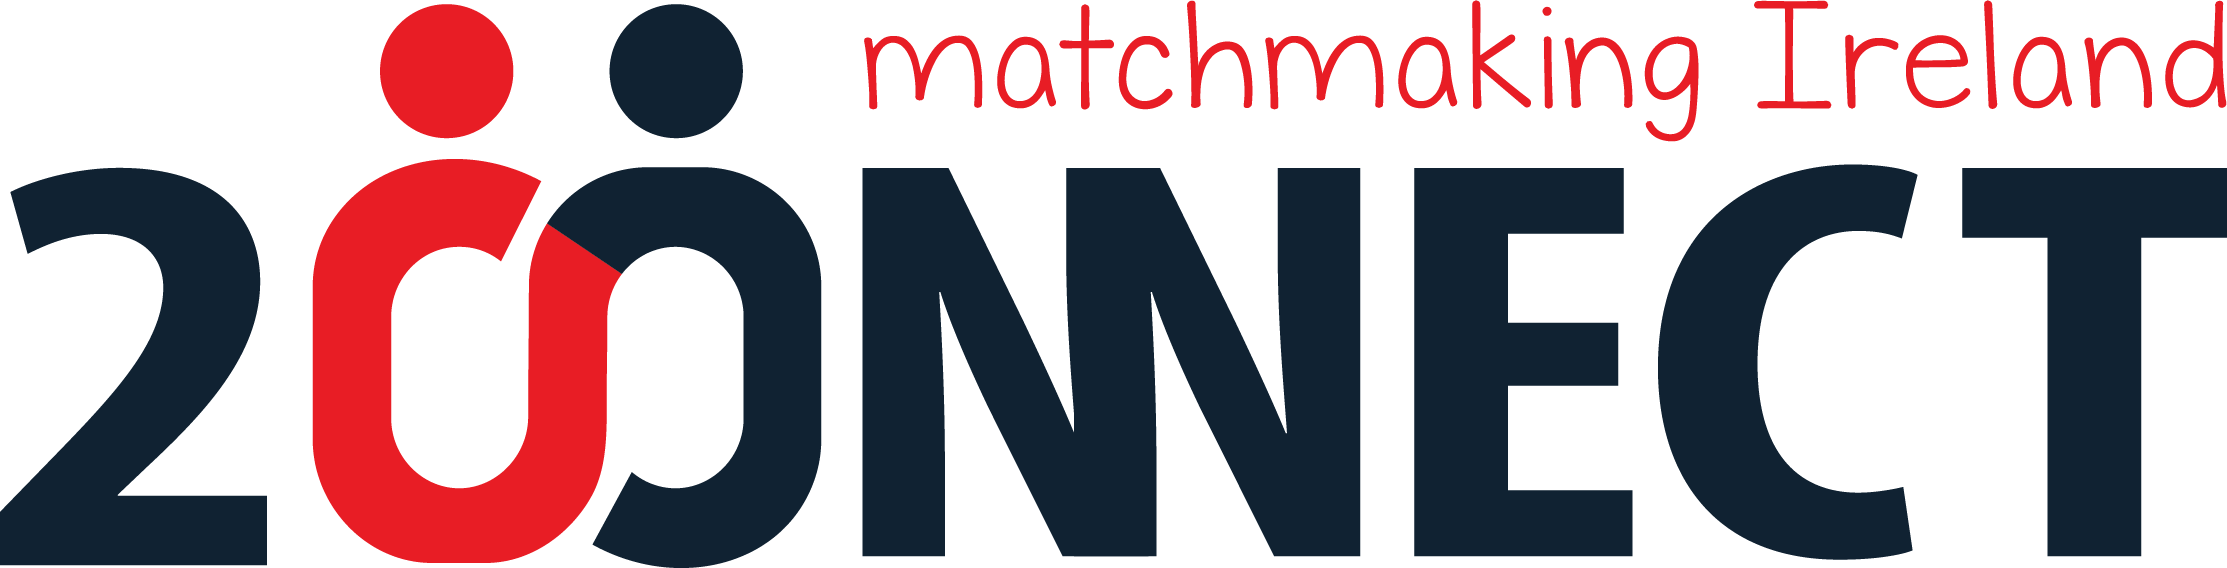 Matchmaker Meath Archives - TWOS COMPANY - Twos